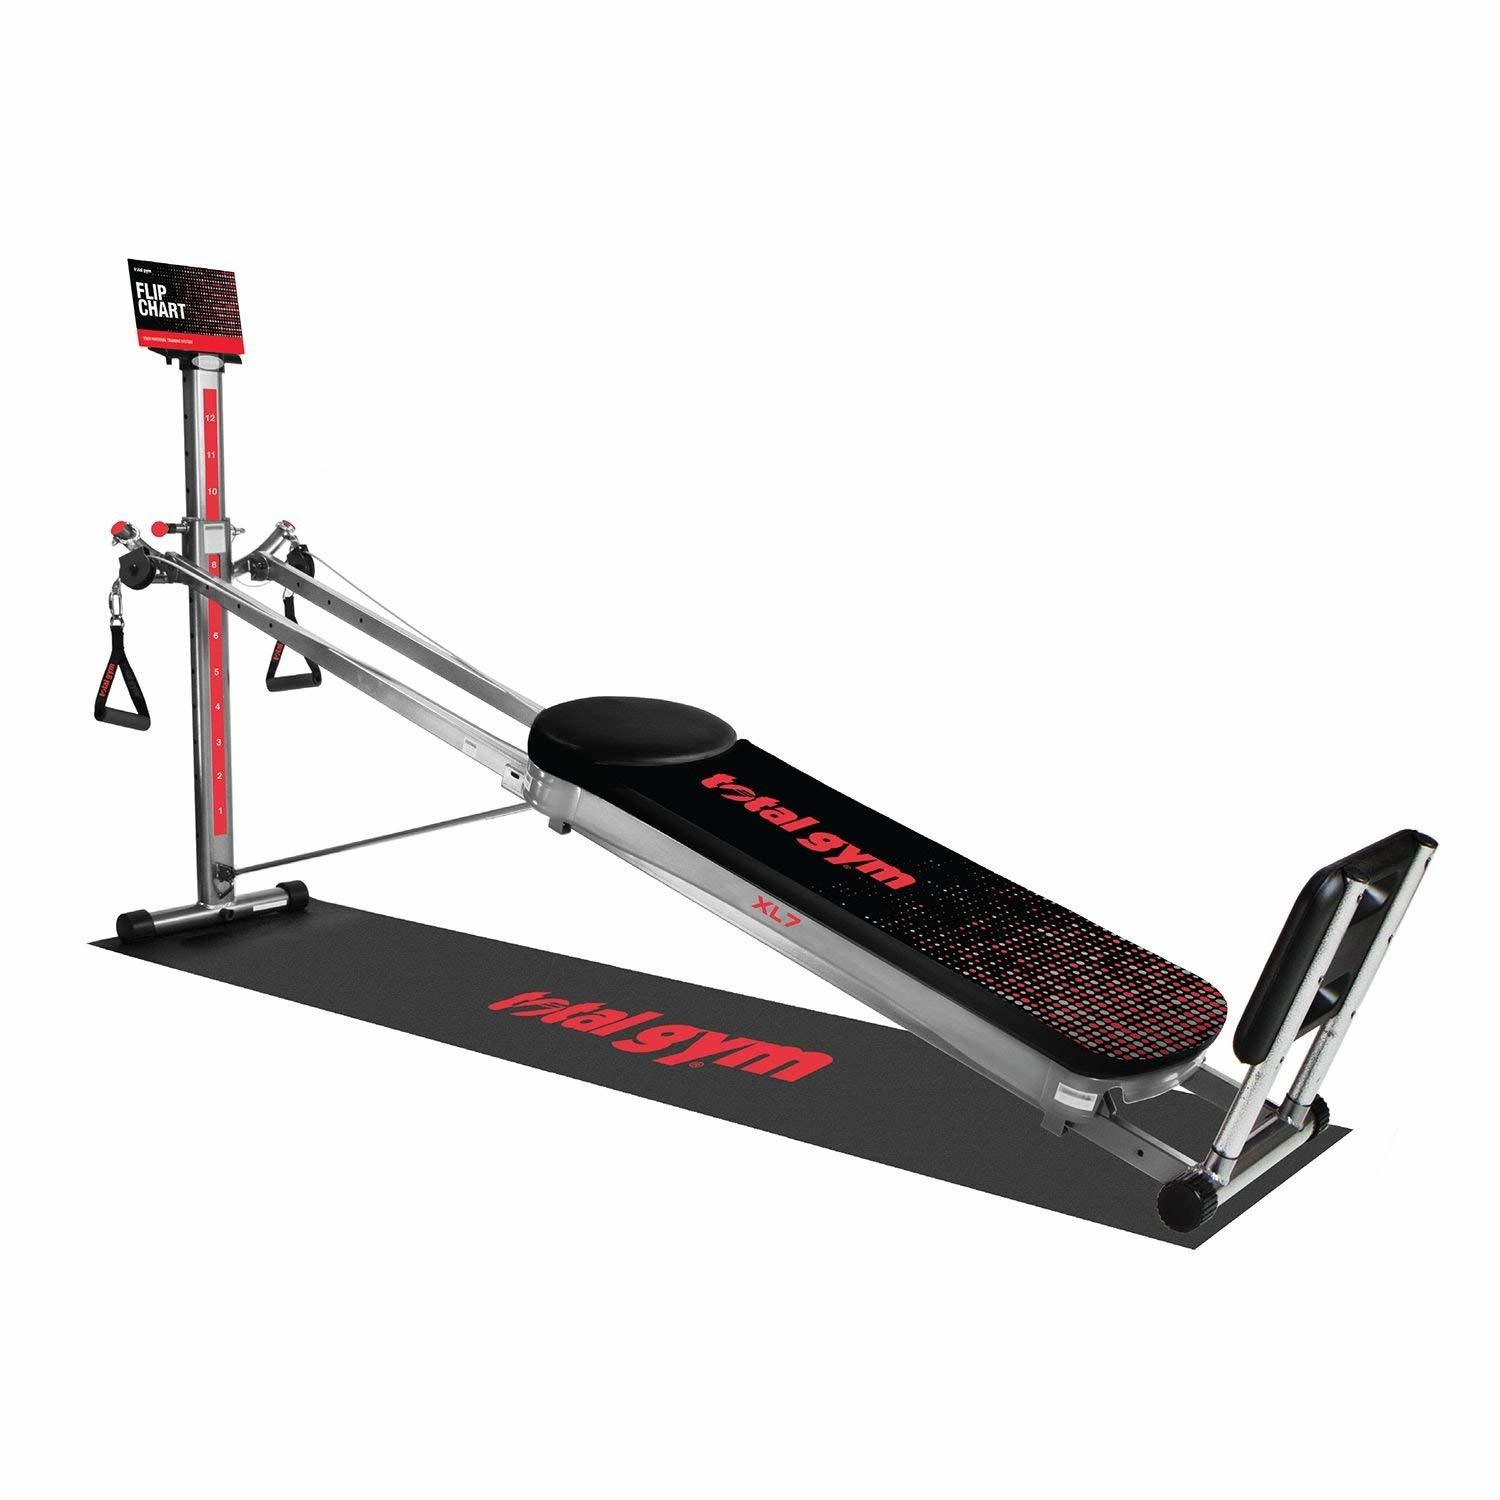 Total gym reviews- 7 best RATED machines and their accessories 8